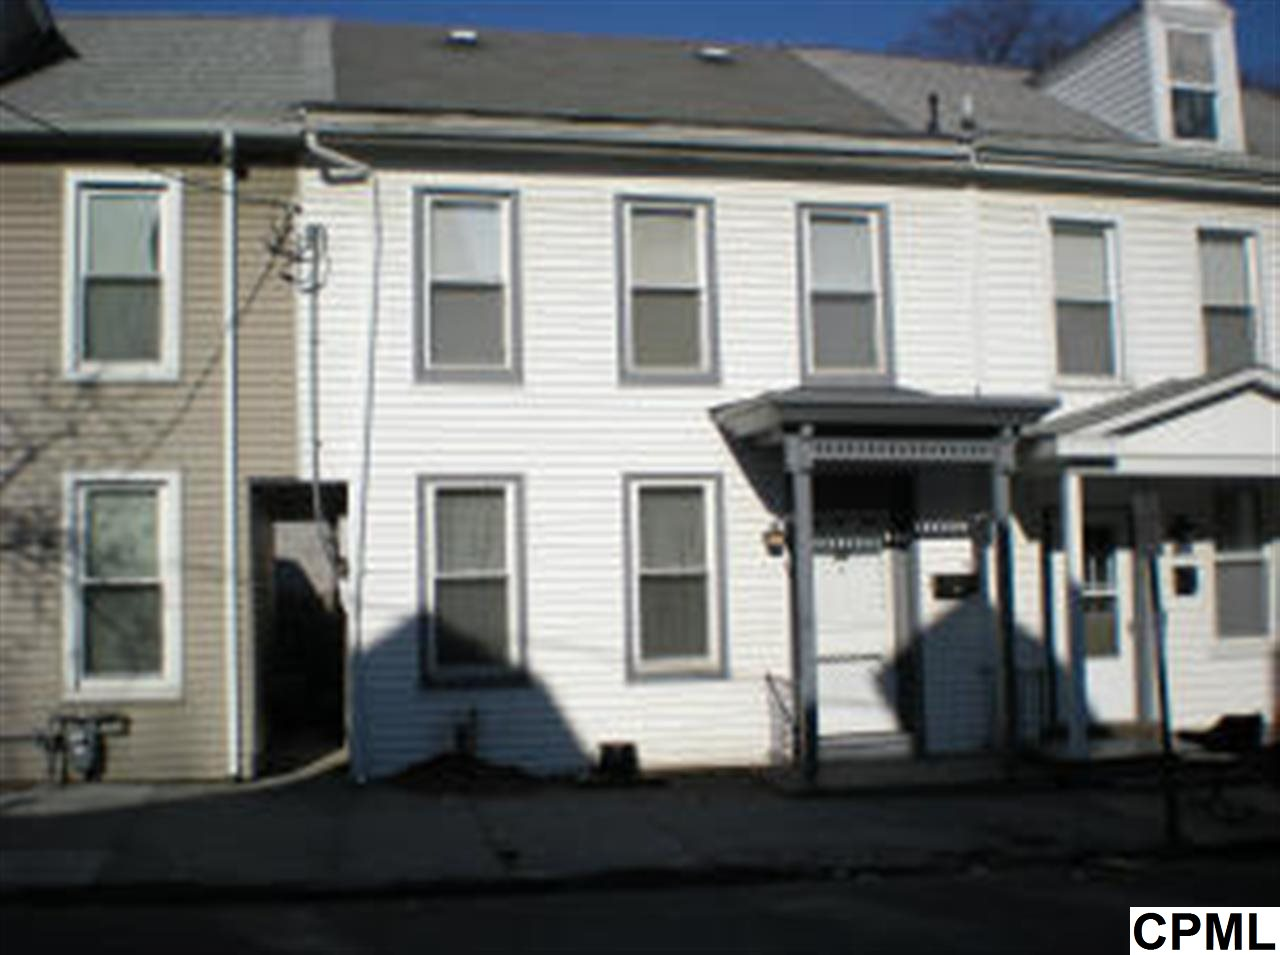 29 S 11th St, Lebanon, PA 17042